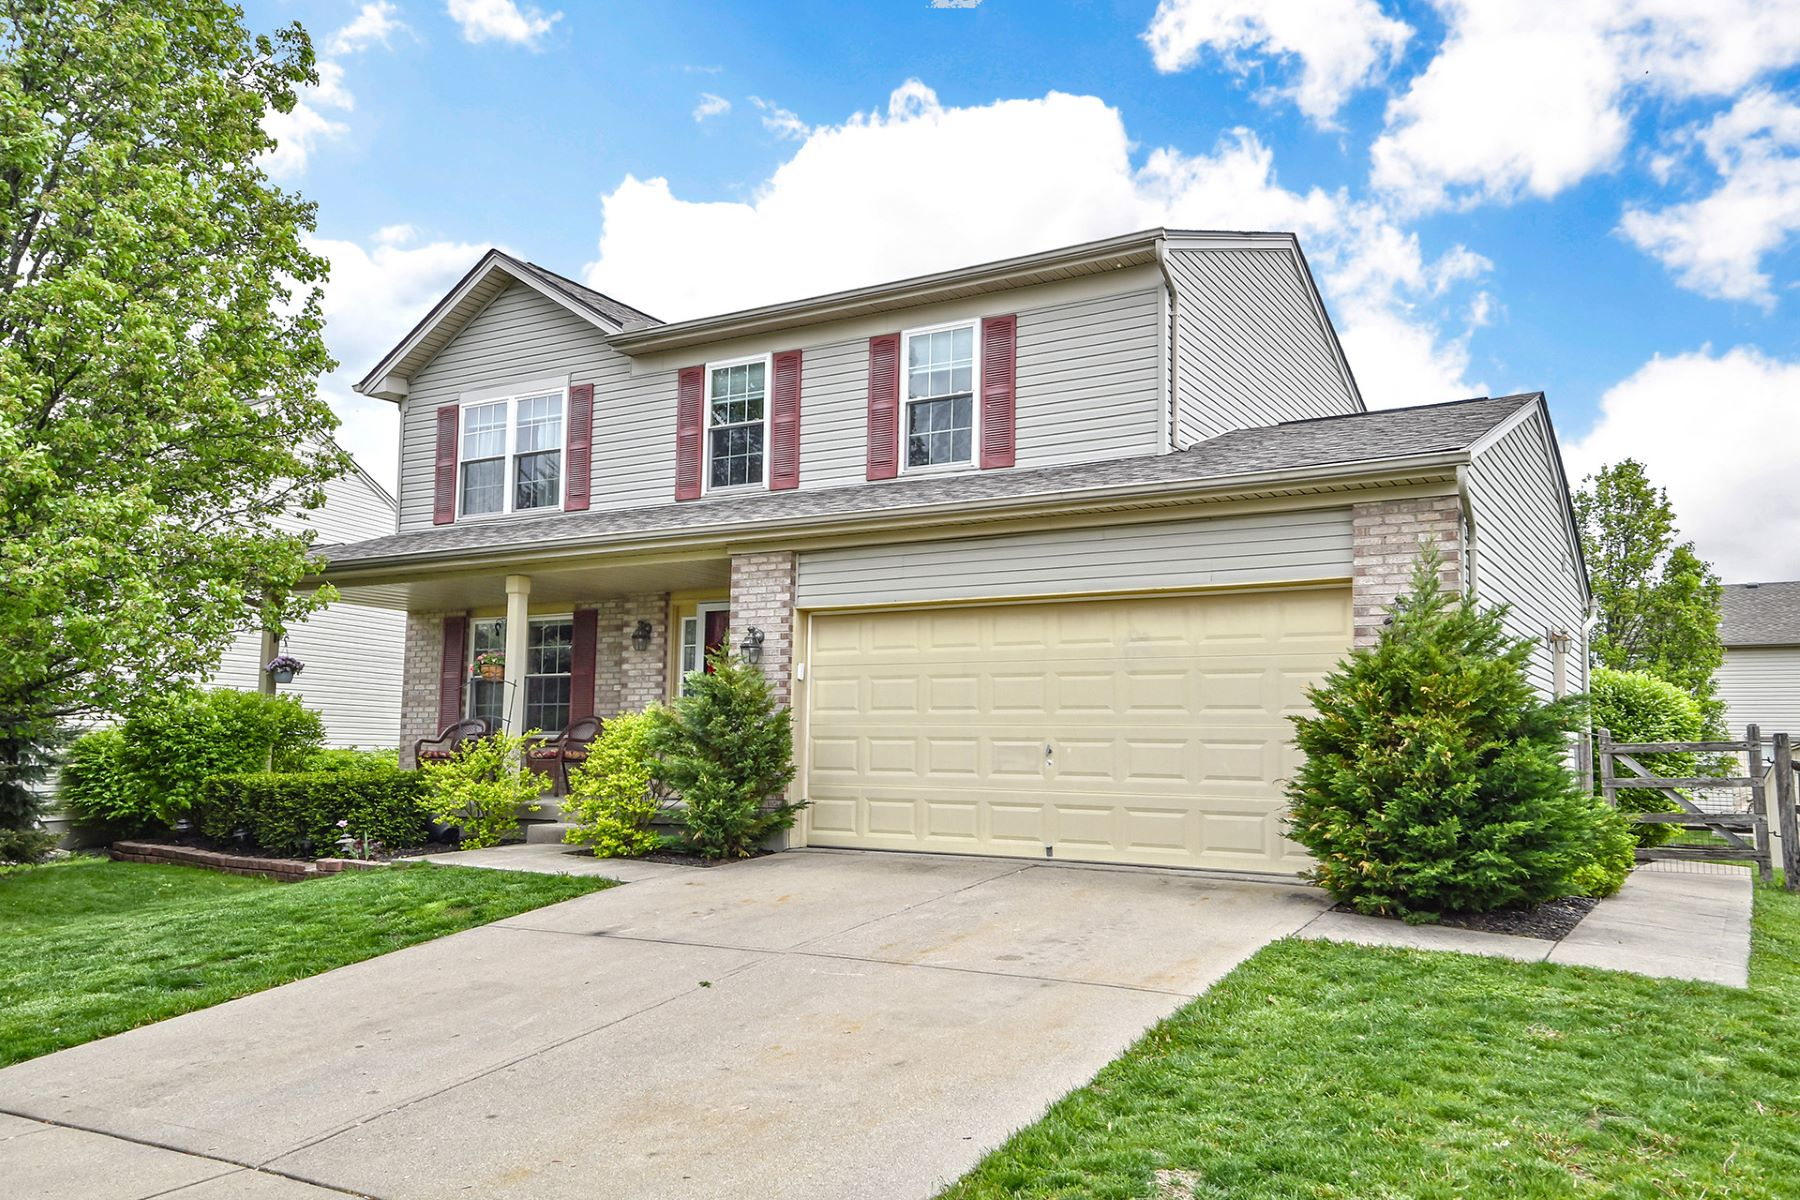 Single Family Homes for Sale at Pristine 3 Bed bedroom open floor plan 200 Saddle Creek Lane Maineville, Ohio 45039 United States